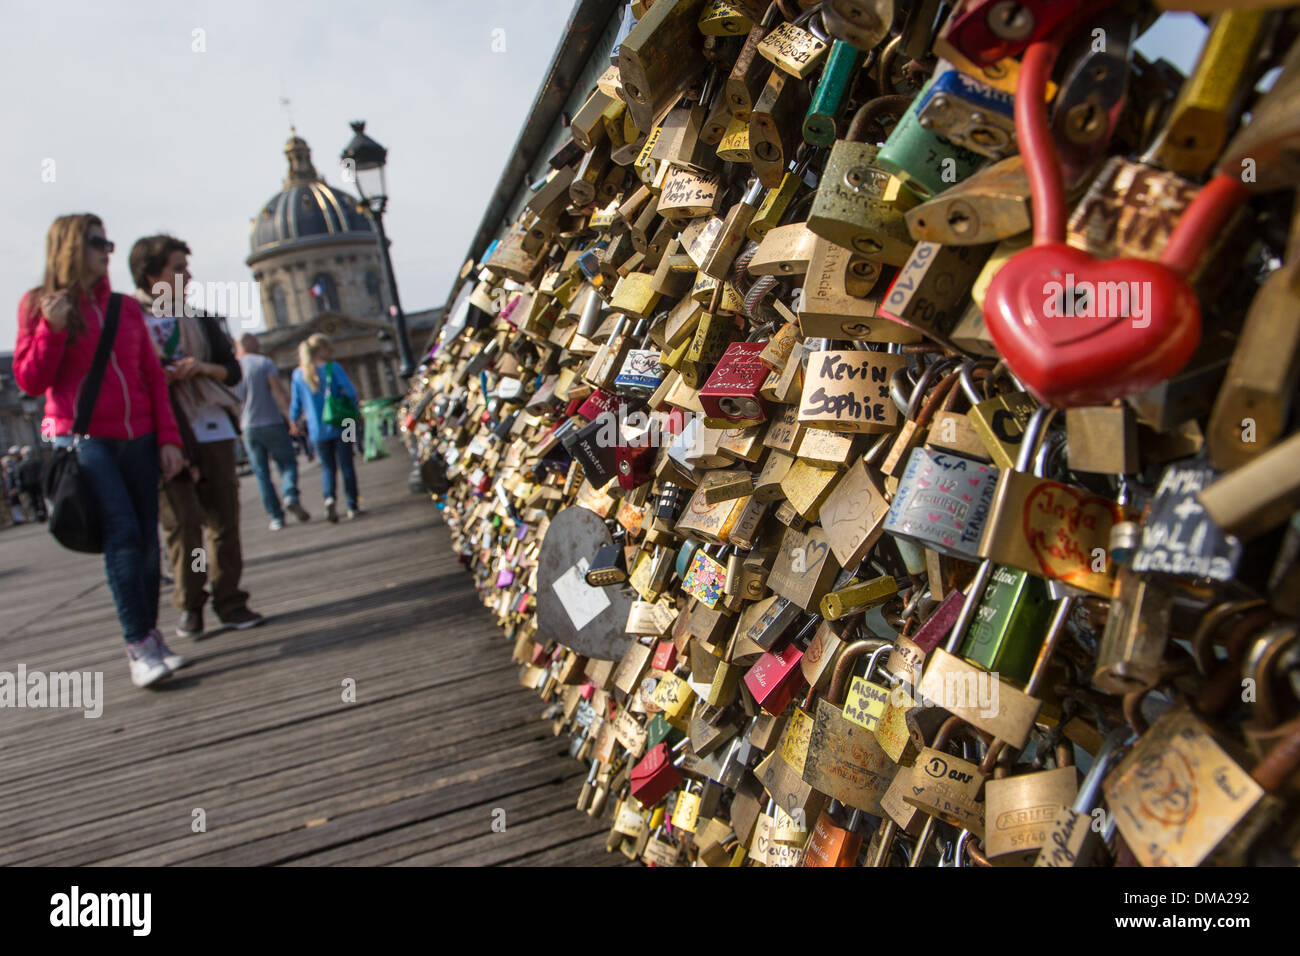 TOURISTS AND LOVERS' PADLOCKS ATTACHED TO THE GUARDRAIL ON THE PONT DES ARTS BRIDGE, 1ST ARRONDISSEMENT, - Stock Image